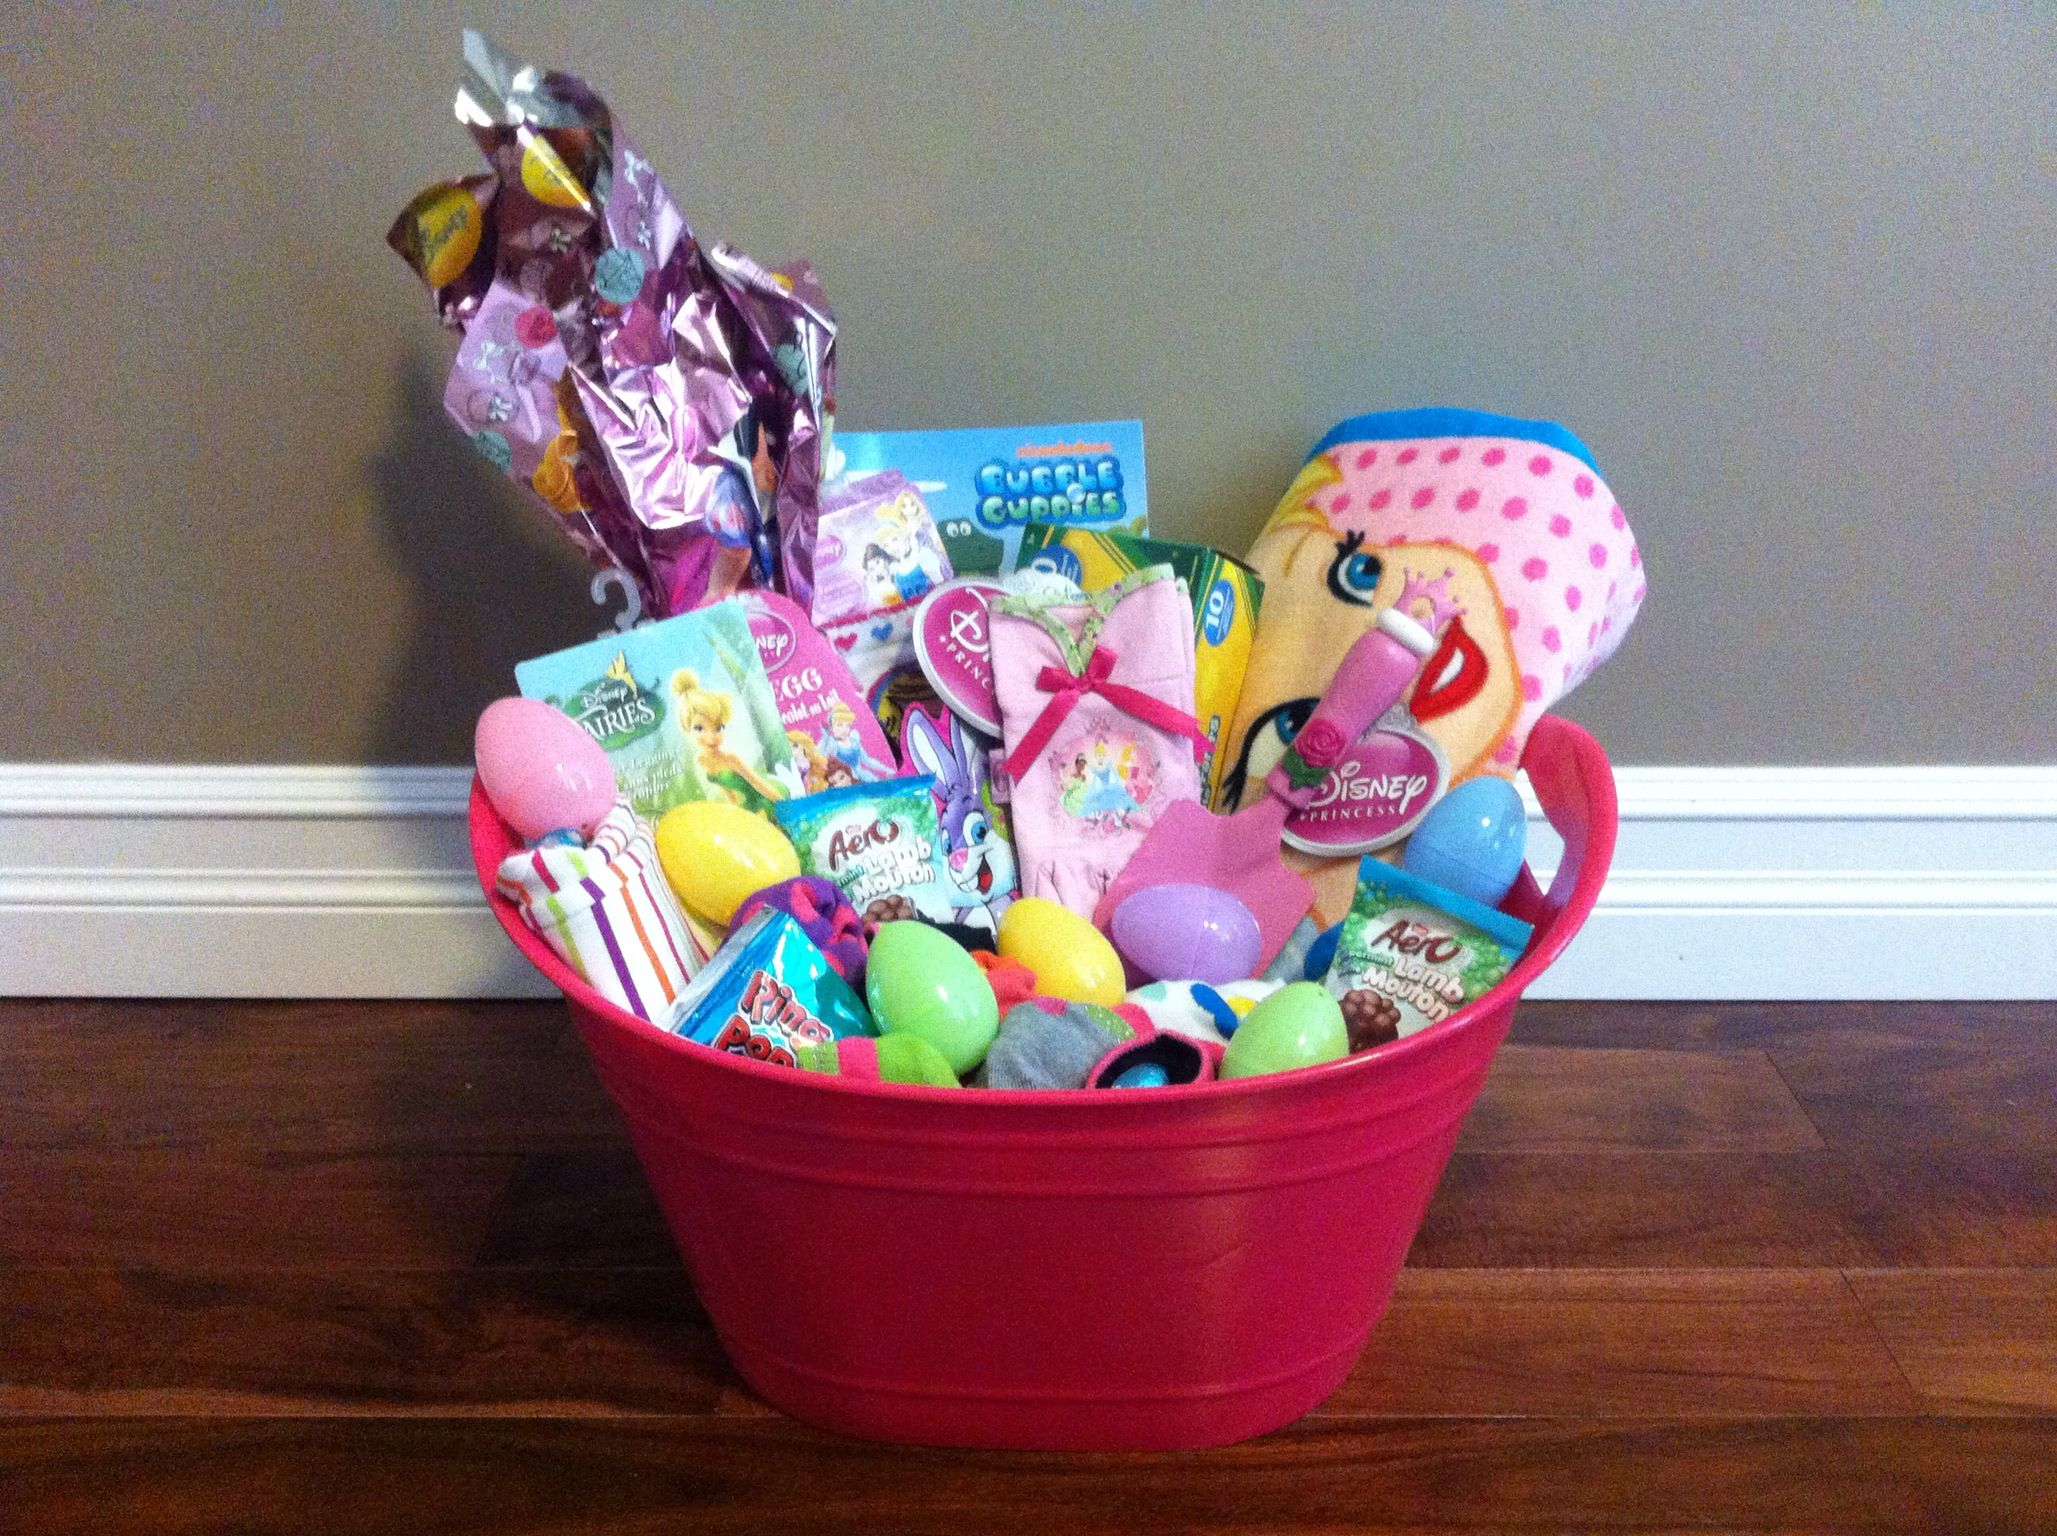 Easter basket for my 4 year old daughter basket includes easter basket for my 4 year old daughter basket includes tinkerbell beach towel bubble guppies painting book crayola paints giant disney princess egg negle Image collections